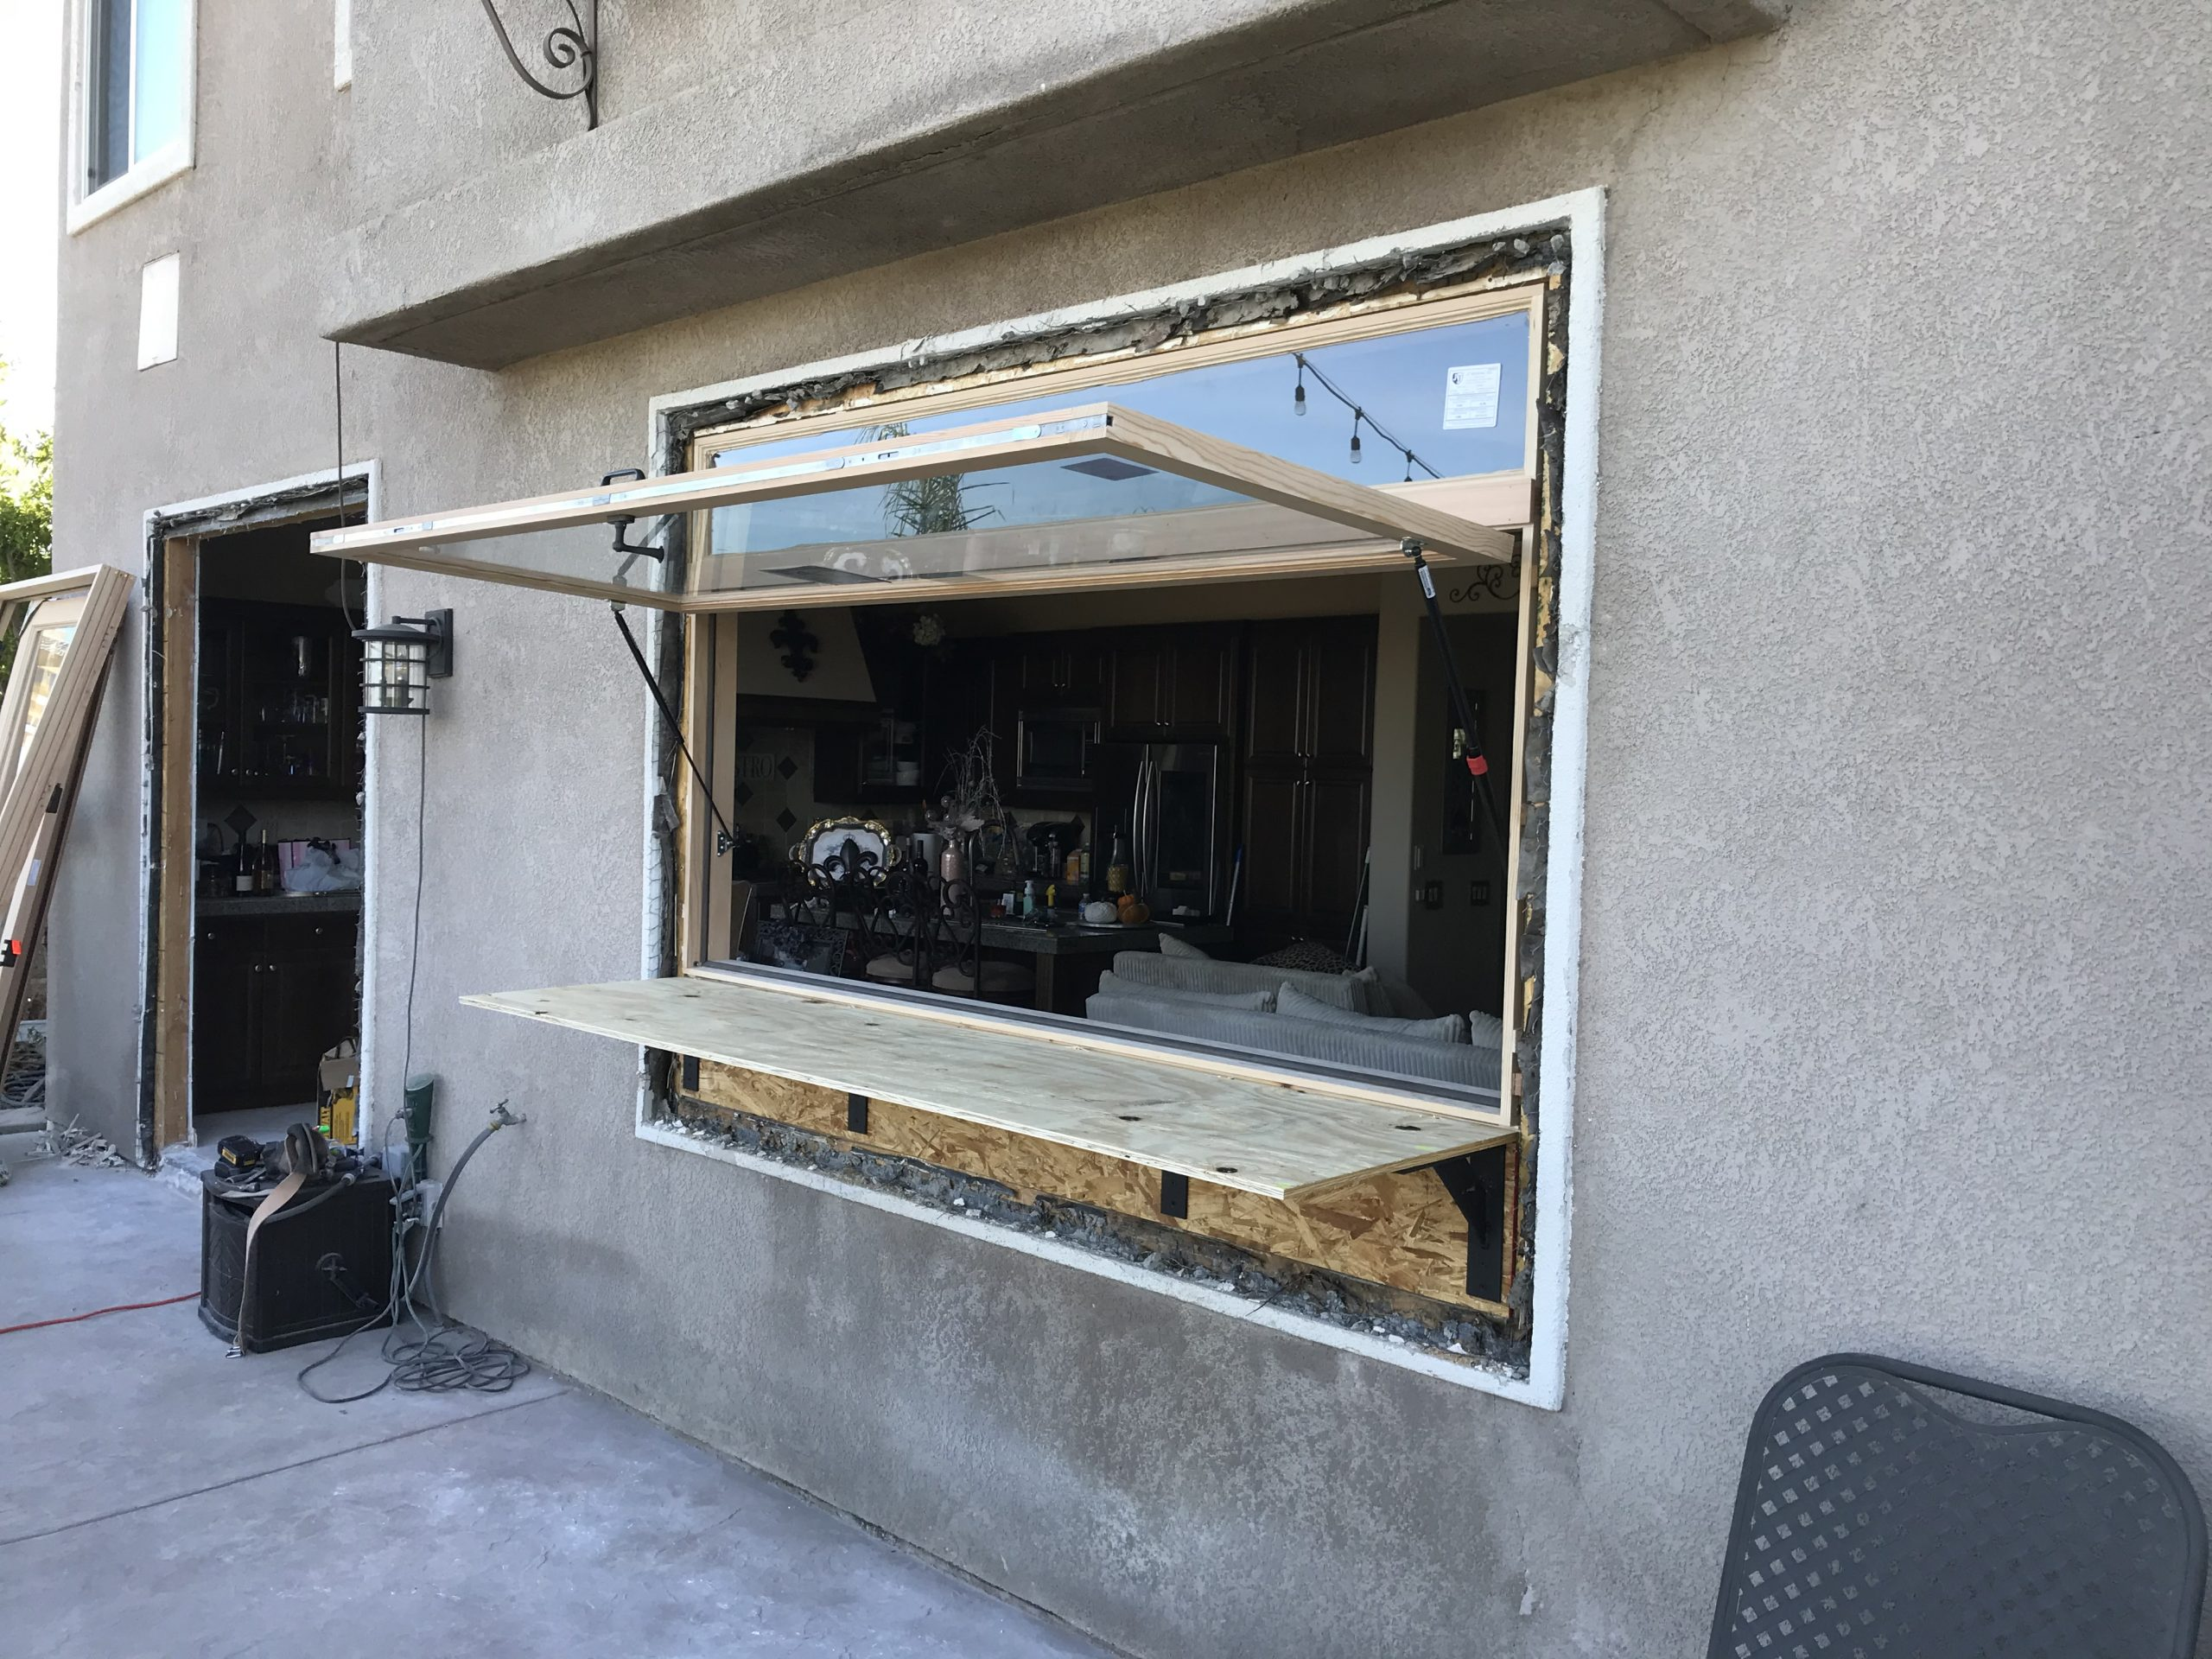 Hydraulic Servery Awning Window with Transom and Bar